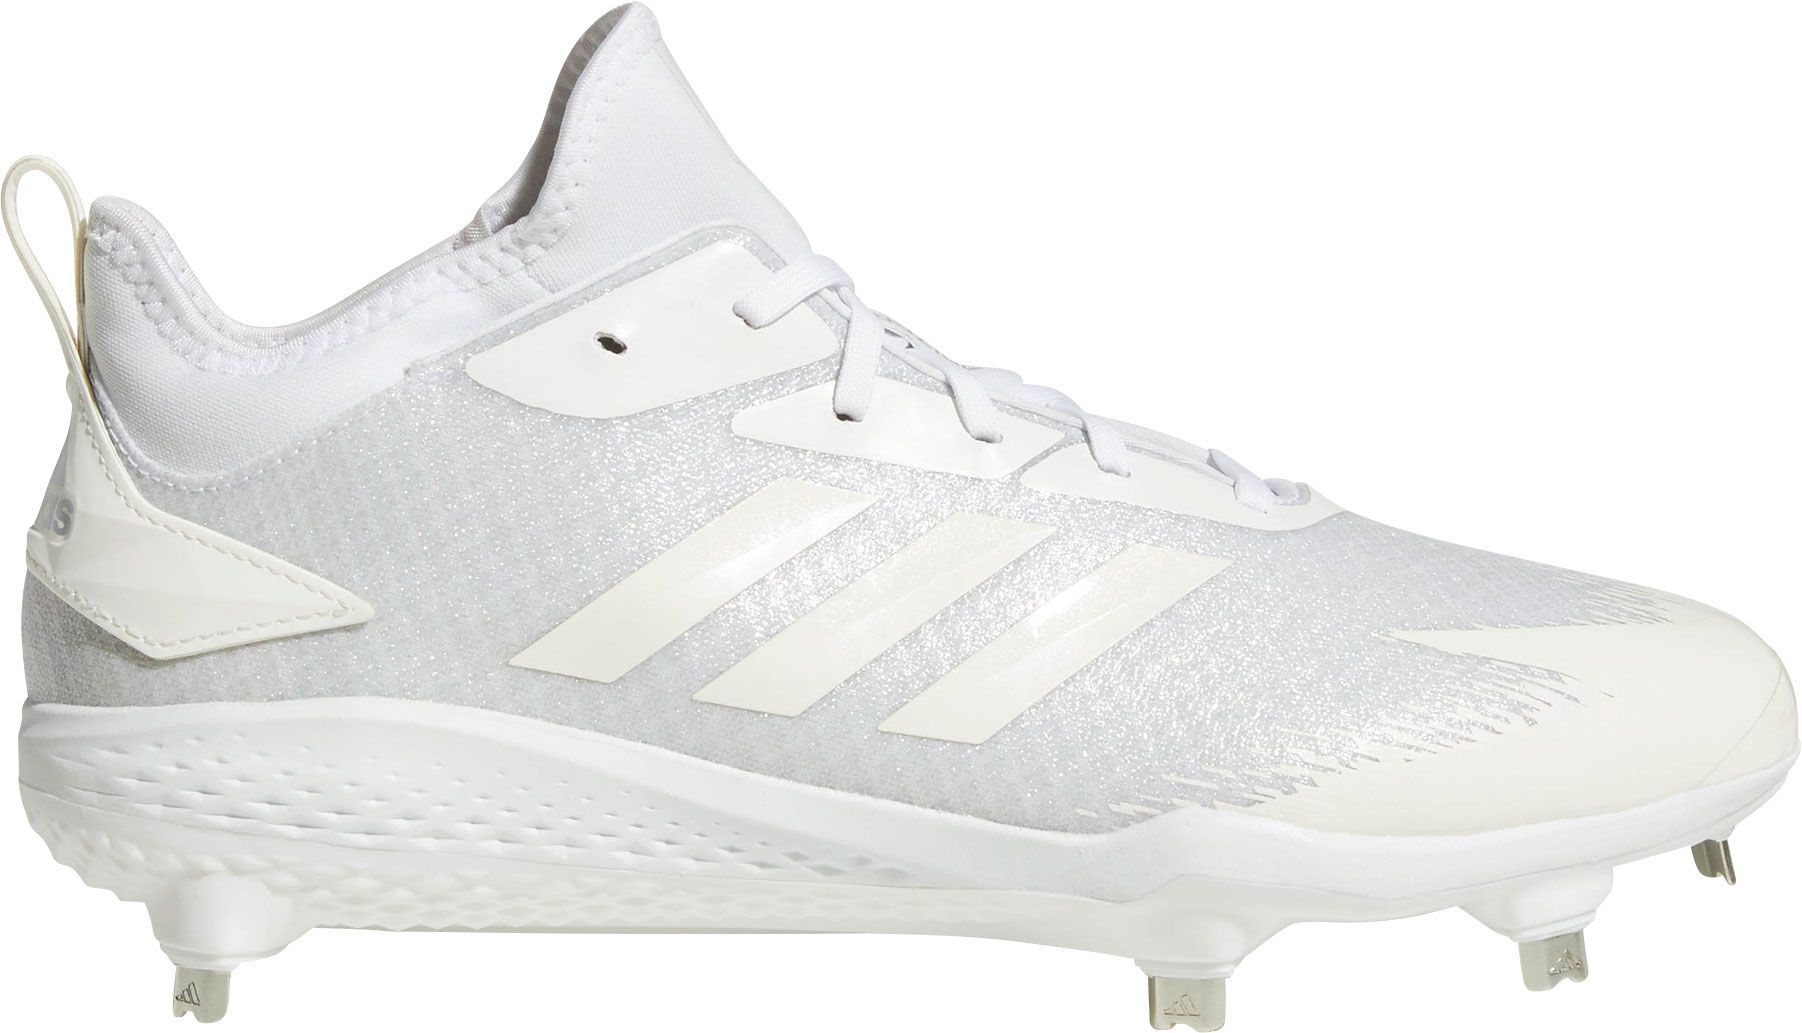 9854d729daa adidas Men s adiZERO Afterburner V Dipped Metal Baseball Cleats ...